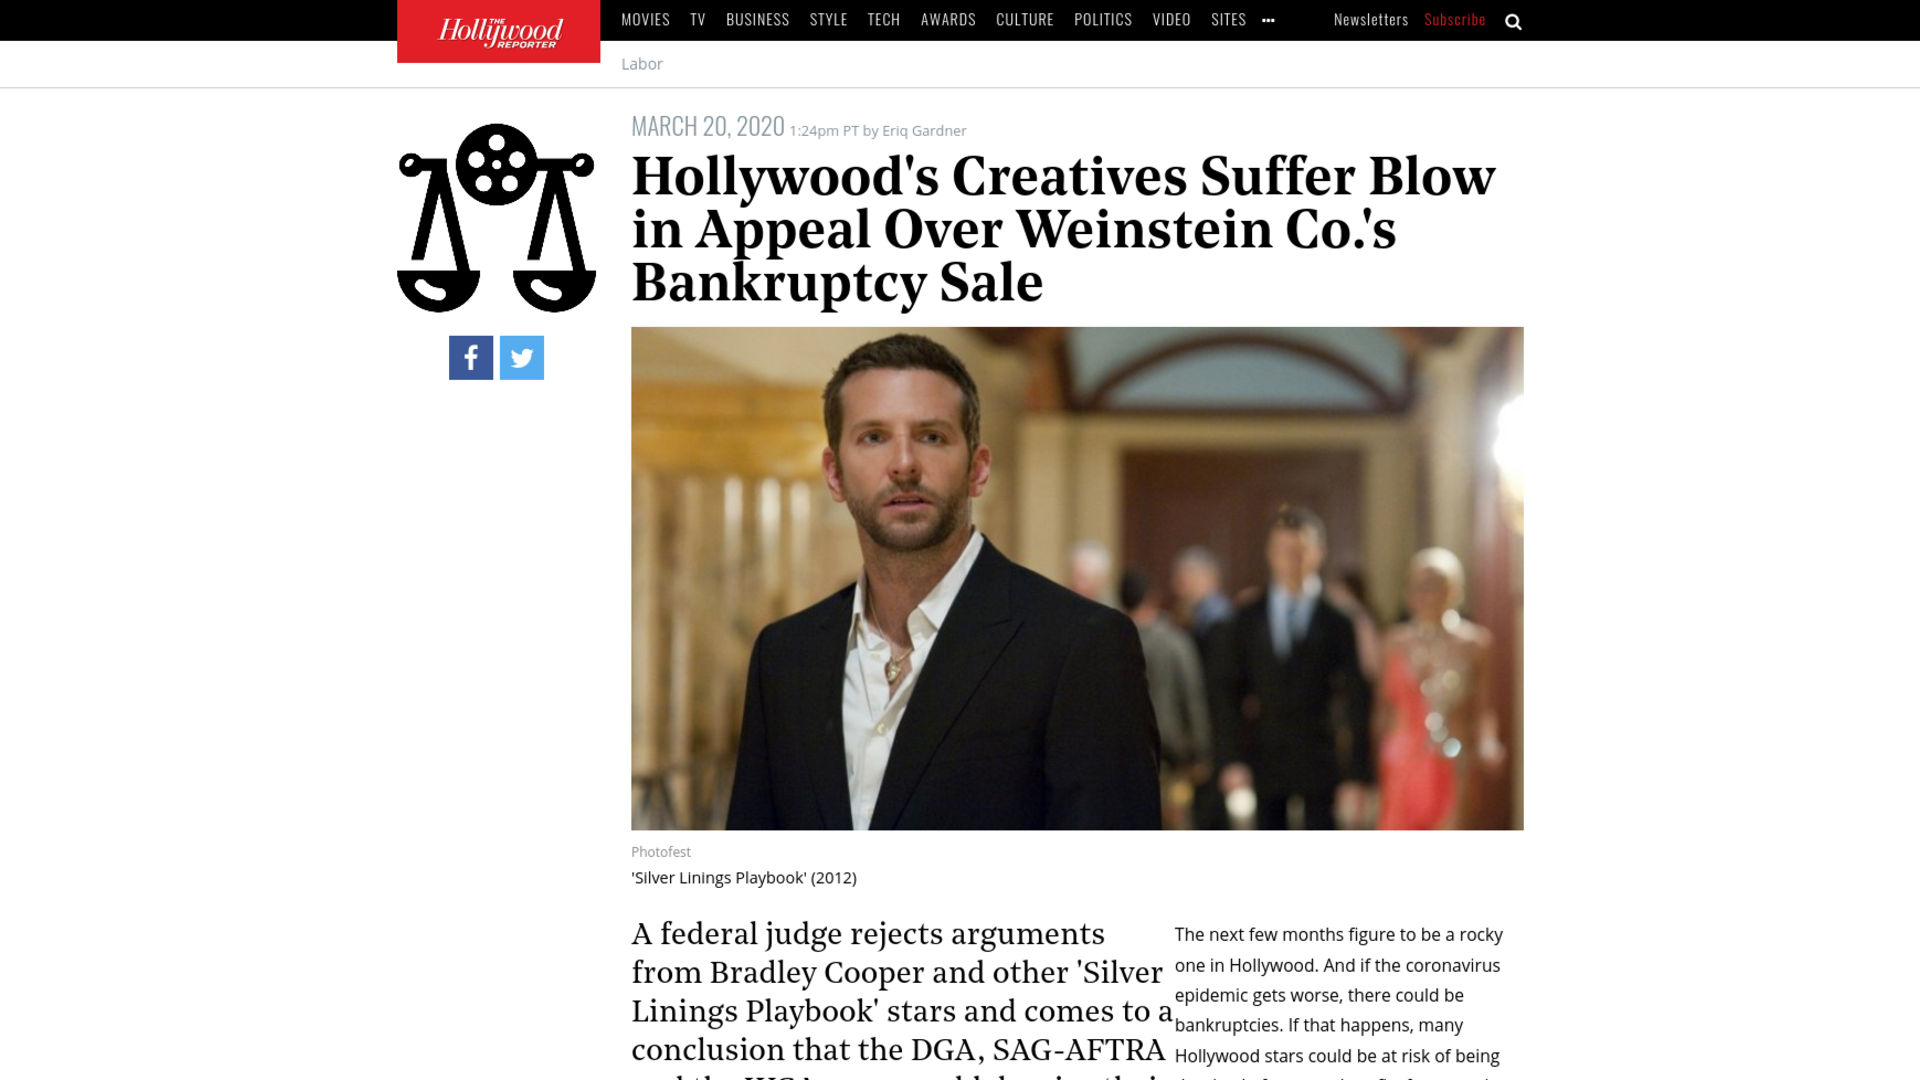 Fairness Rocks News Hollywood's Creatives Suffer Blow in Appeal Over Weinstein Co.'s Bankruptcy Sale